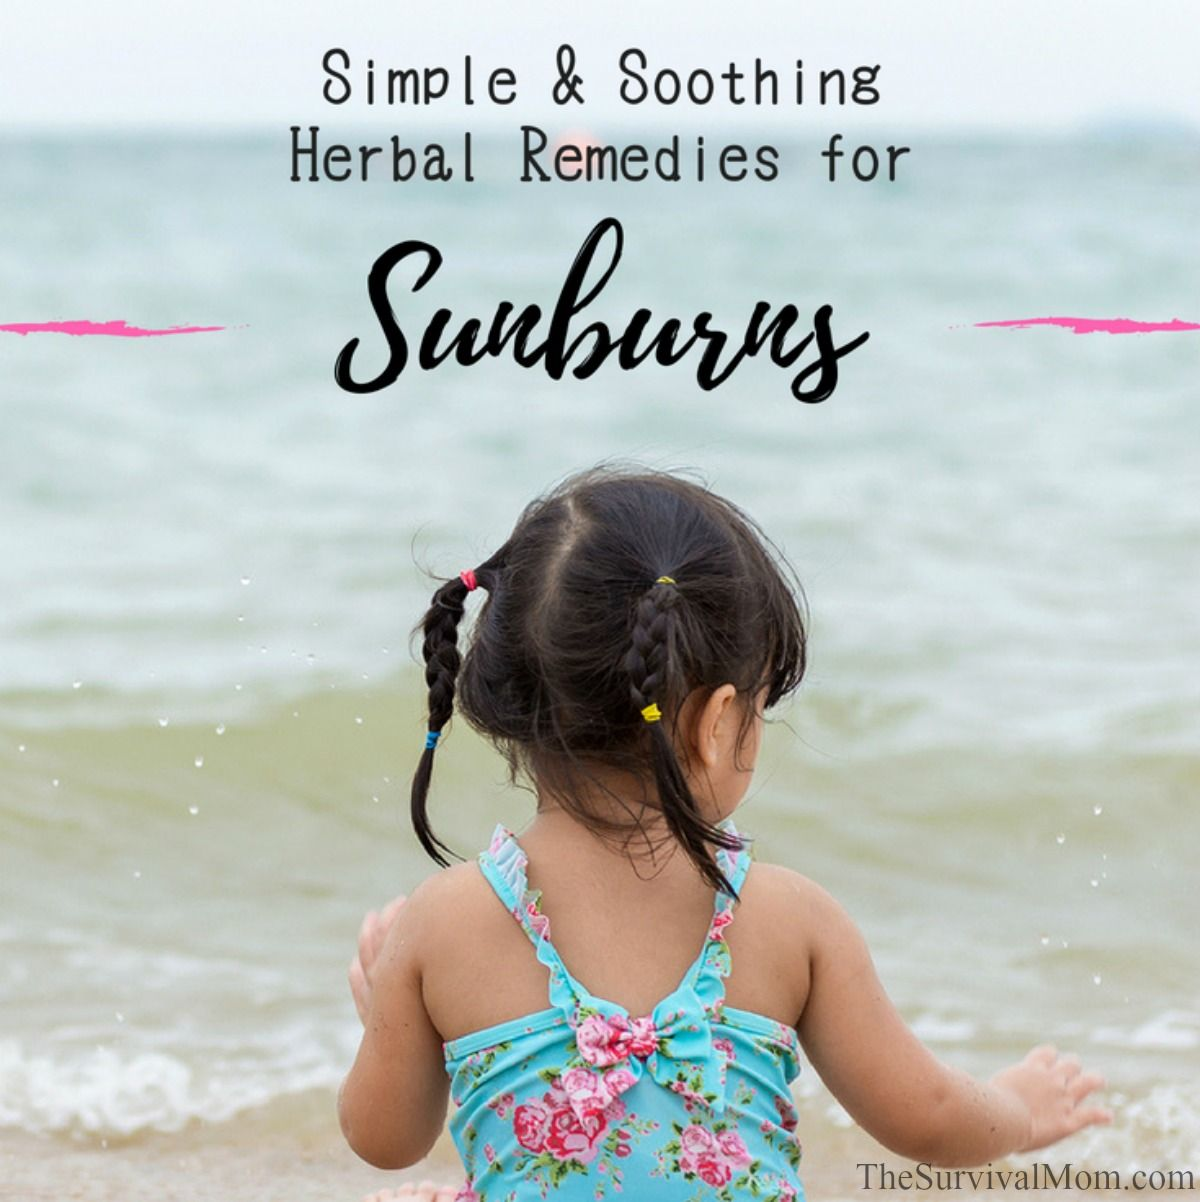 Simple & Soothing Herbal Remedies for Sunburns via The Survival Mom